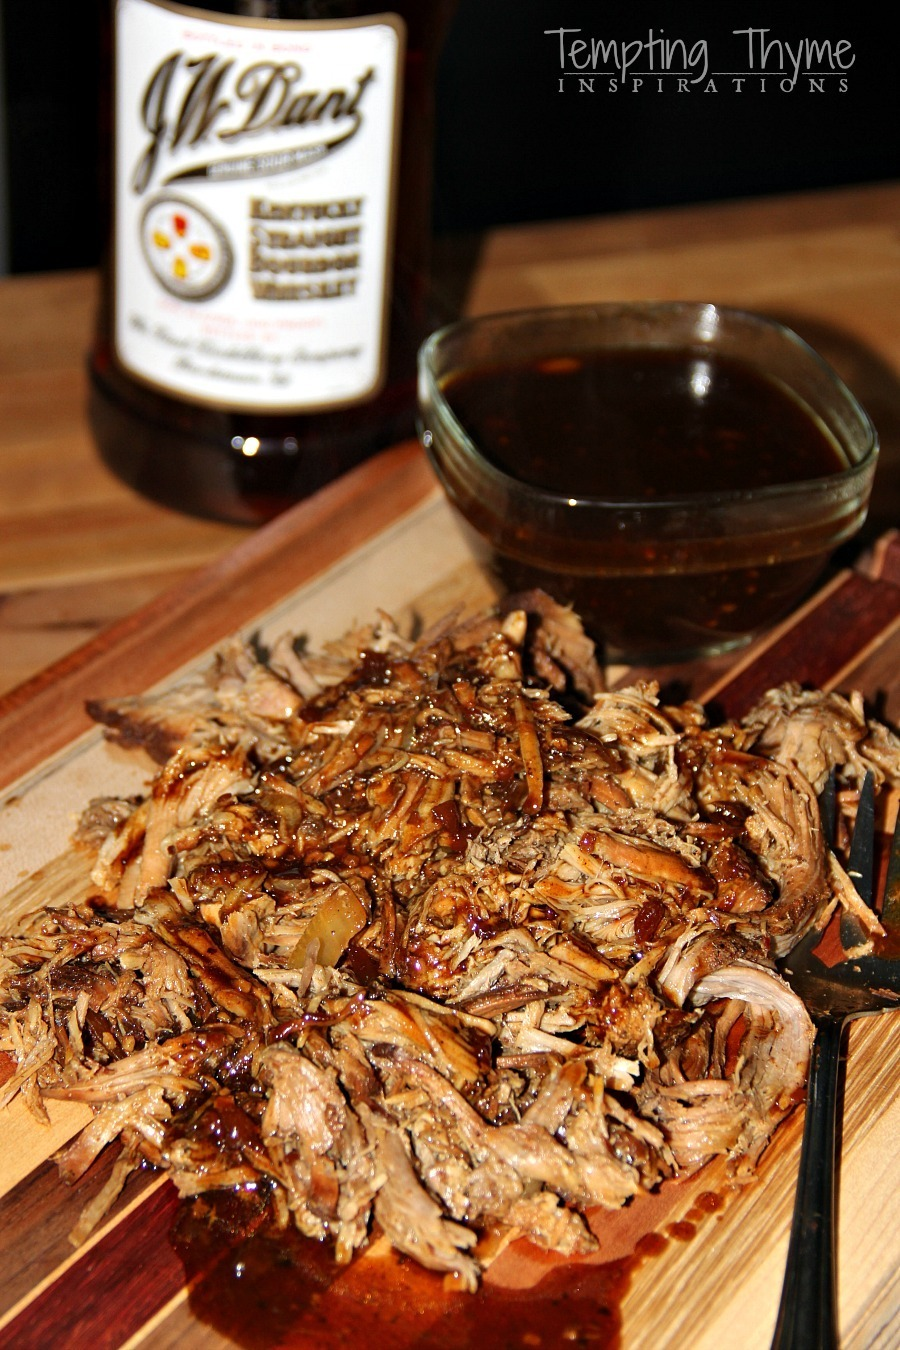 Pulled Pork with Whiskey Barbecue Sauce